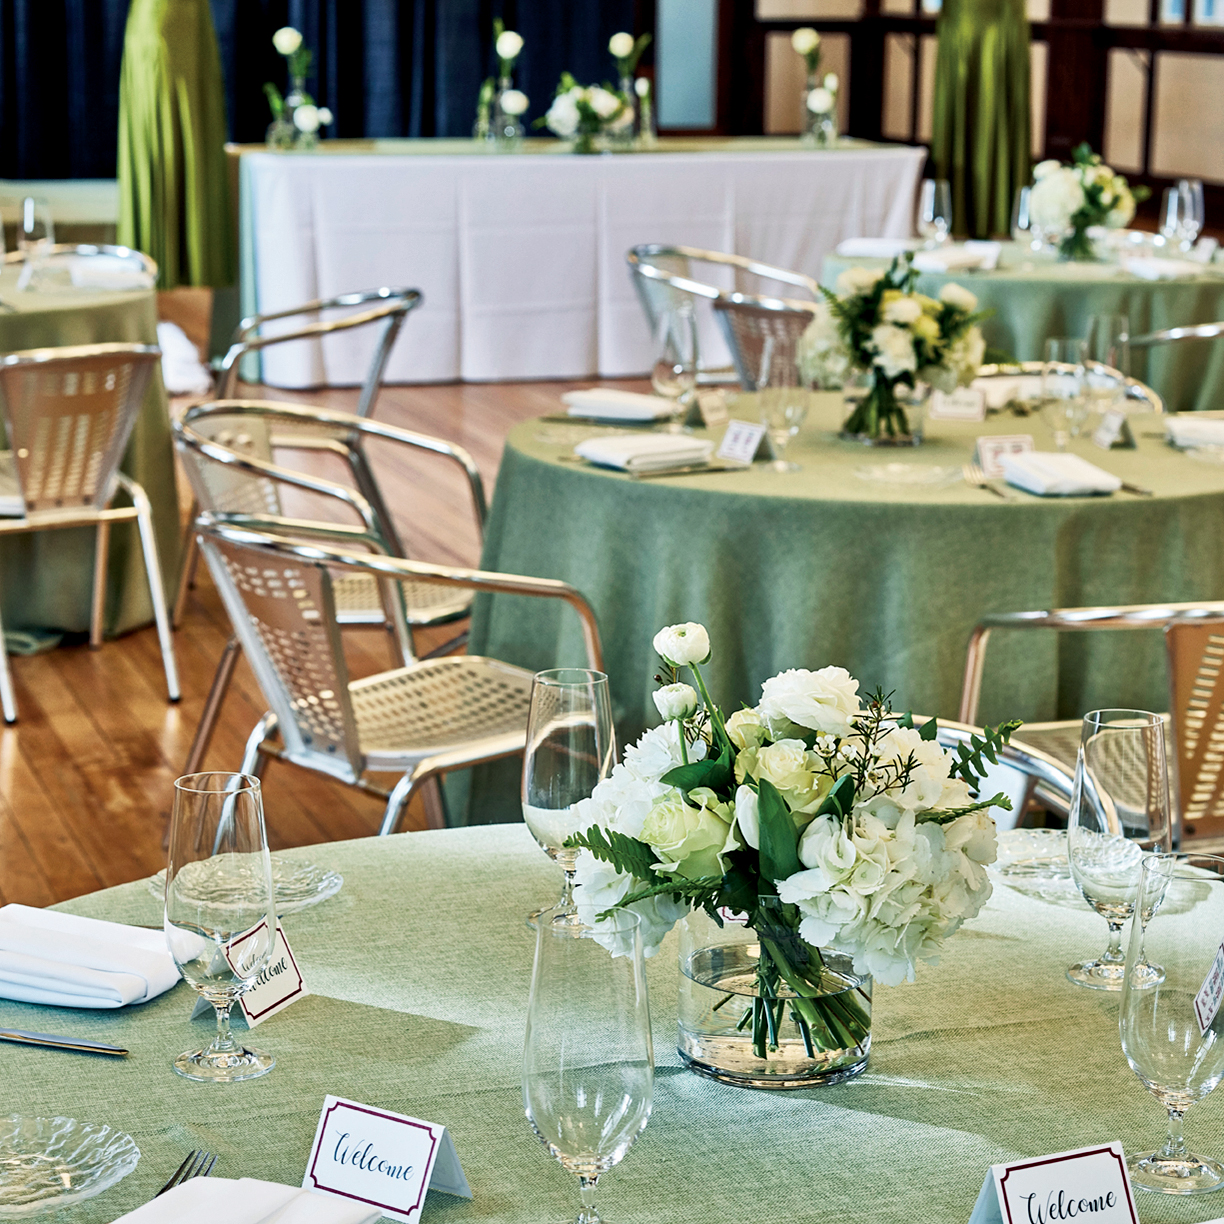 Garden party luncheon at Currie Hall, Canada's National Ballet School | Photo: Paul C